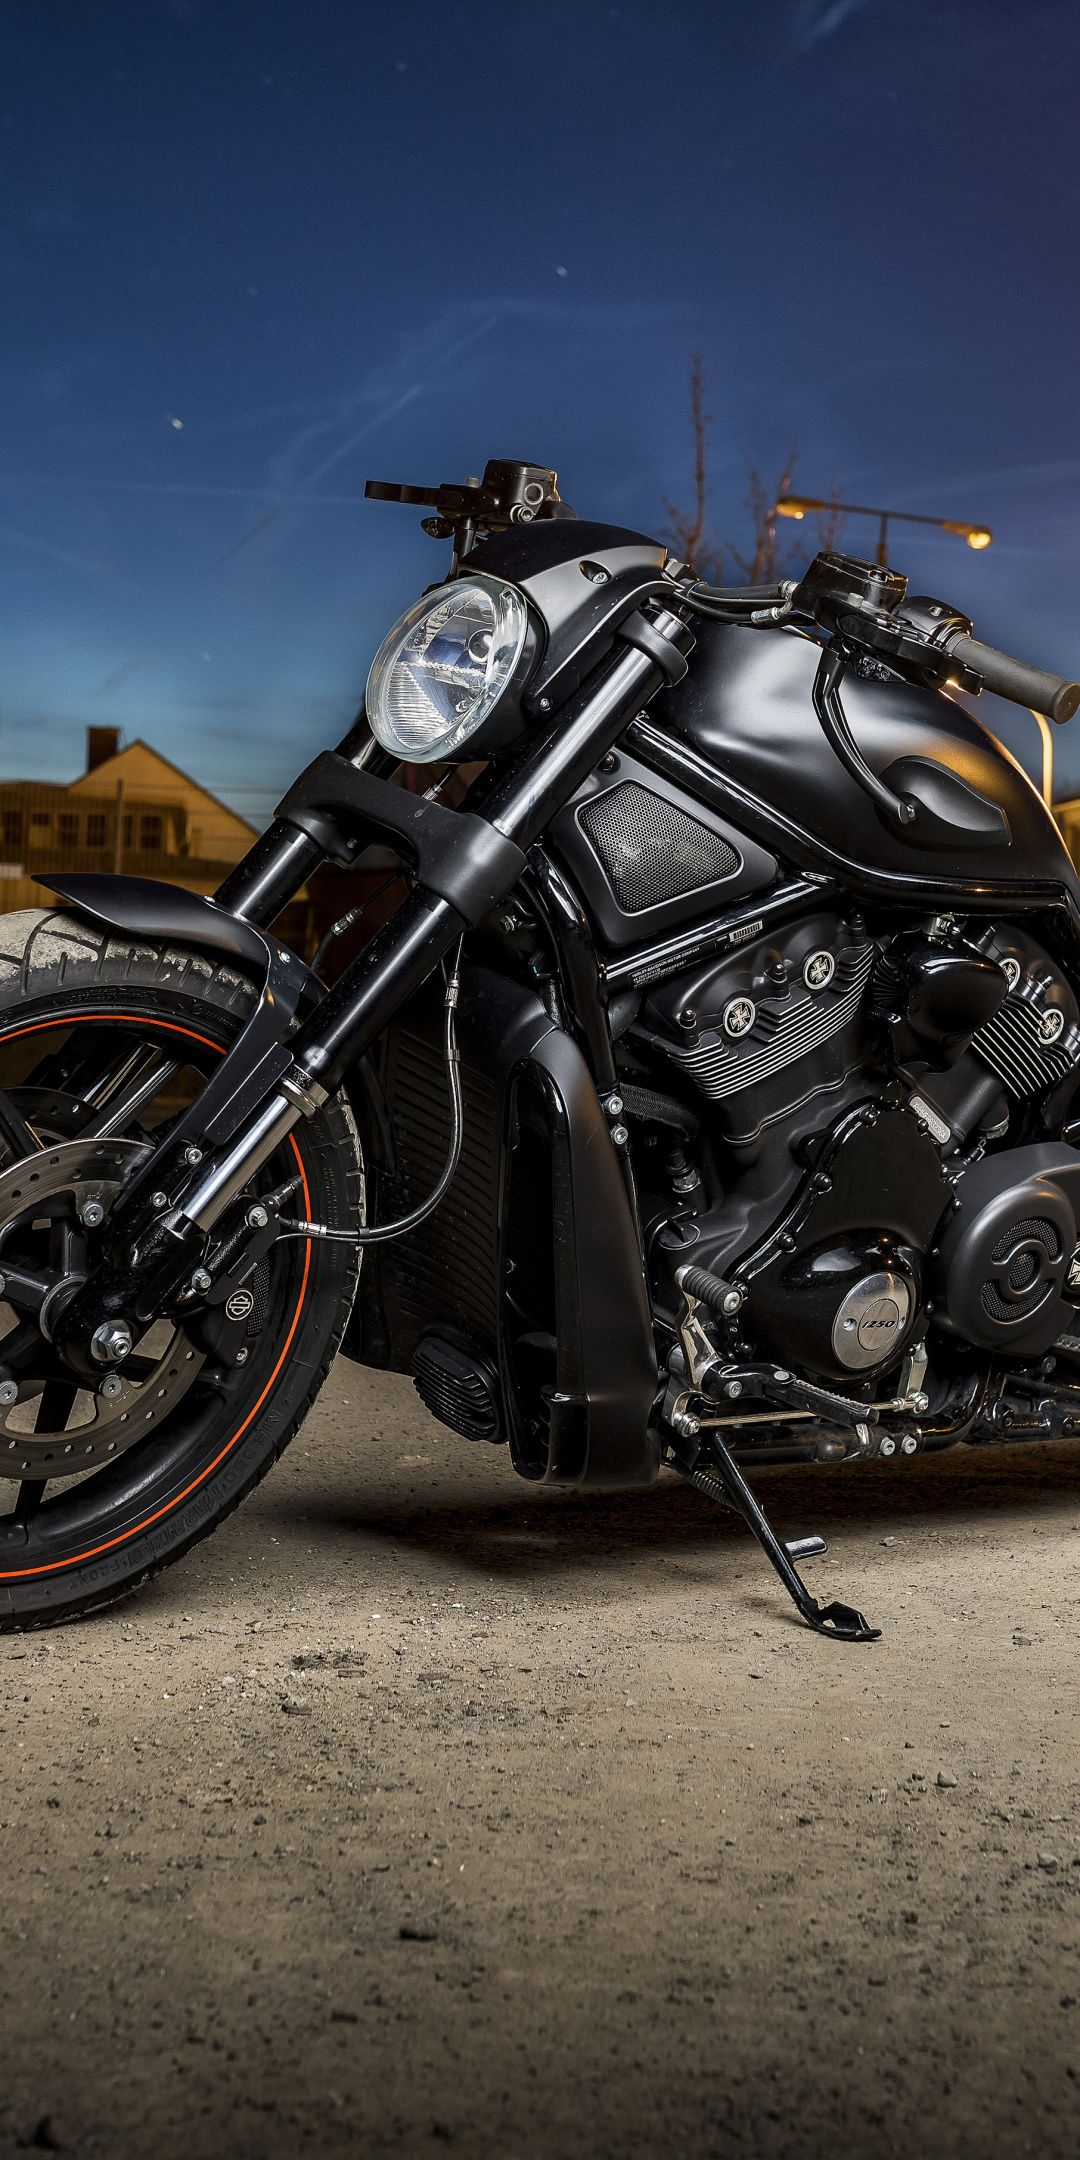 Harley Davidson Muscle Bike Night Out 1080x2160 Wallpaper With